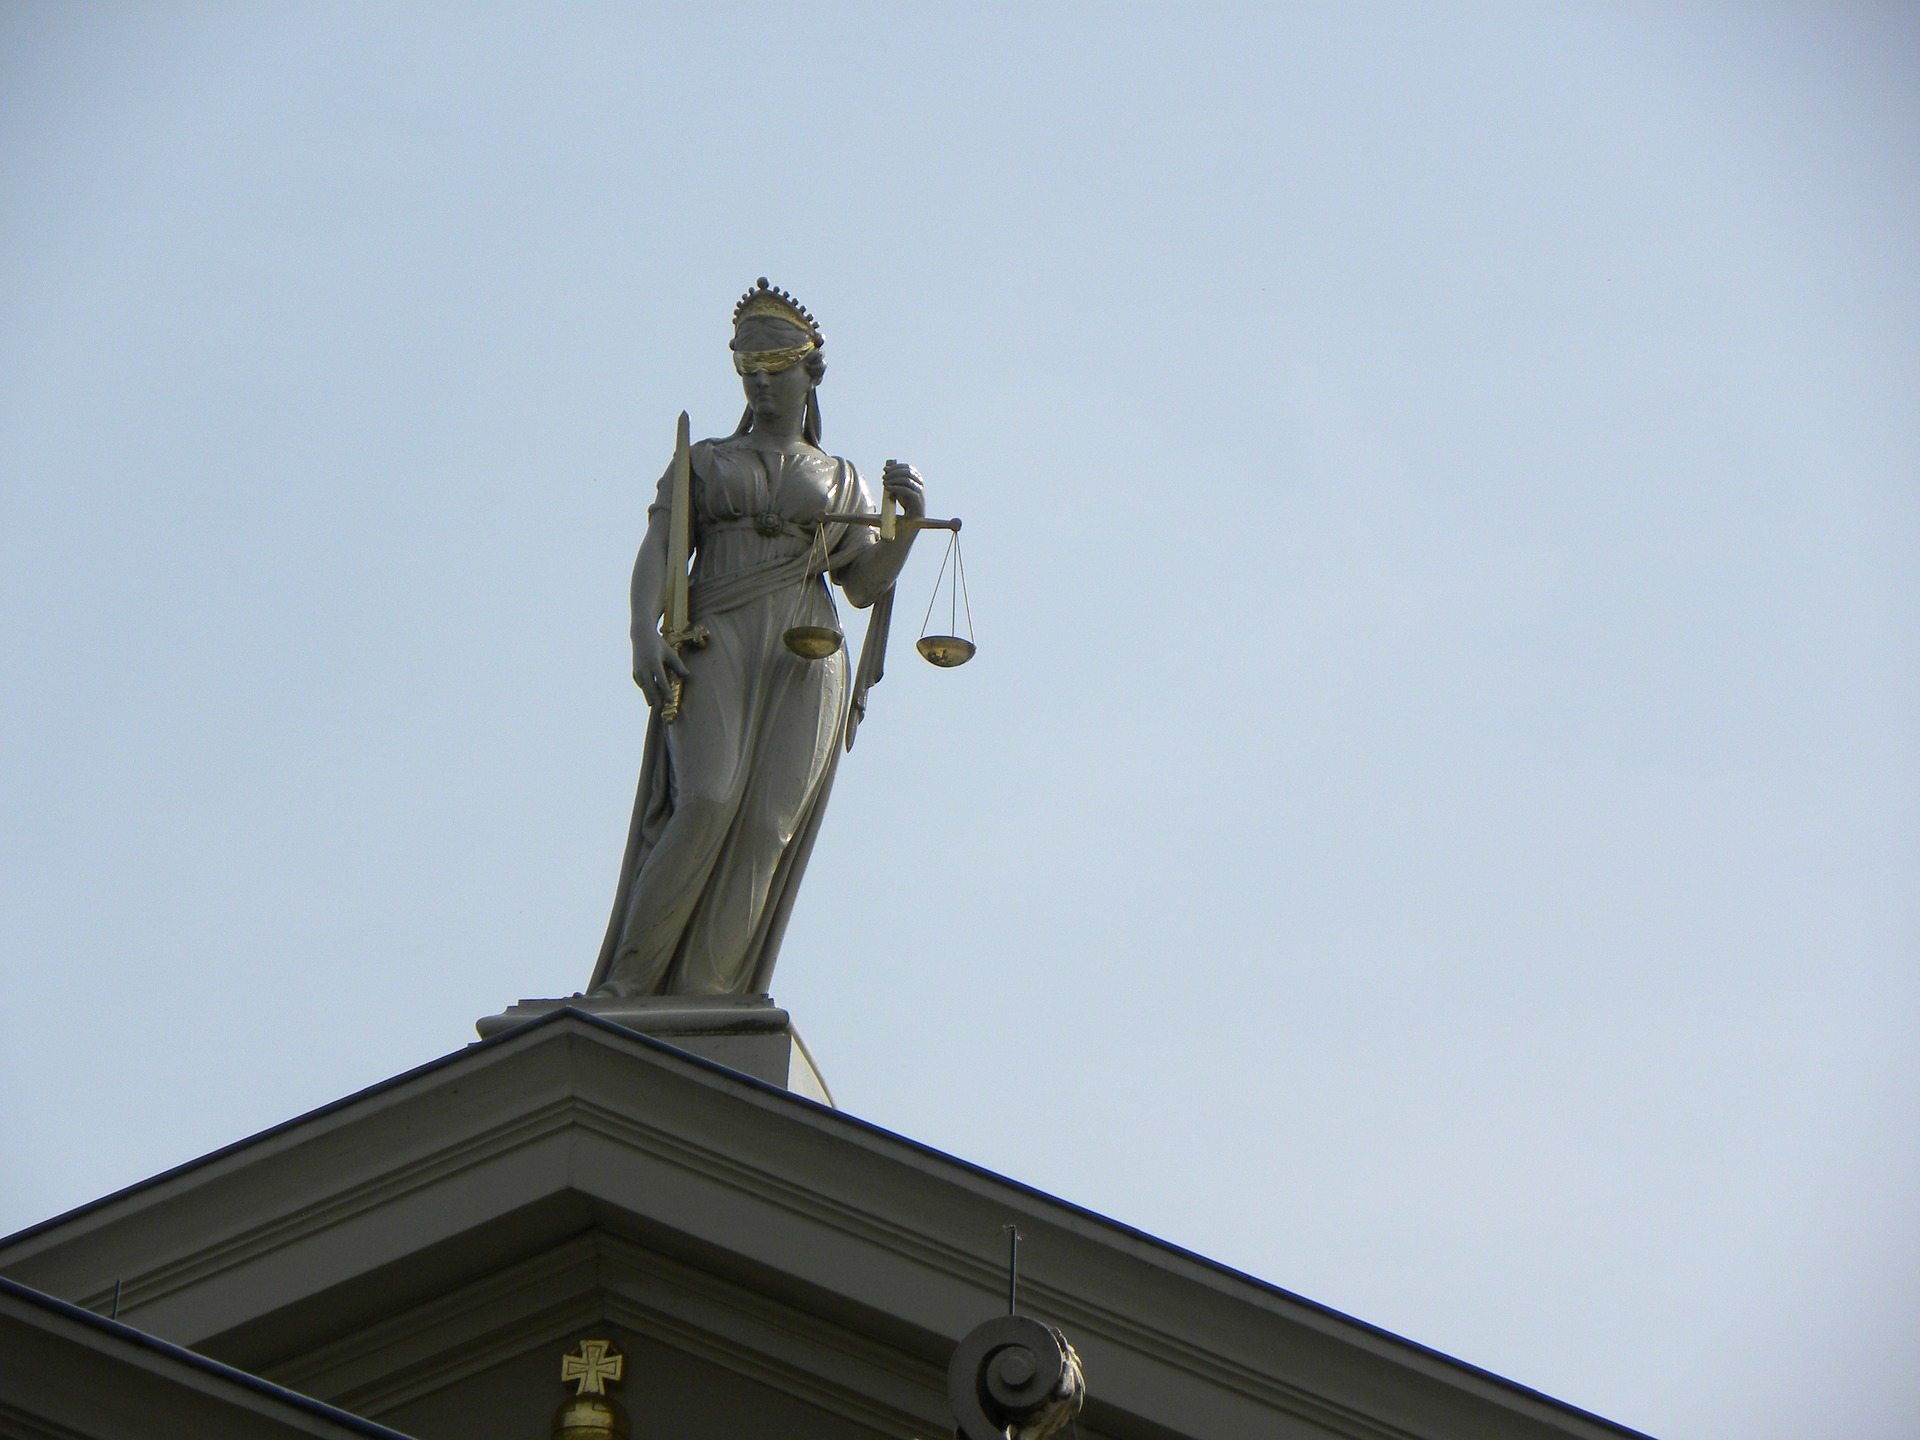 Libra Ingress 2020 – The Scales of Justice